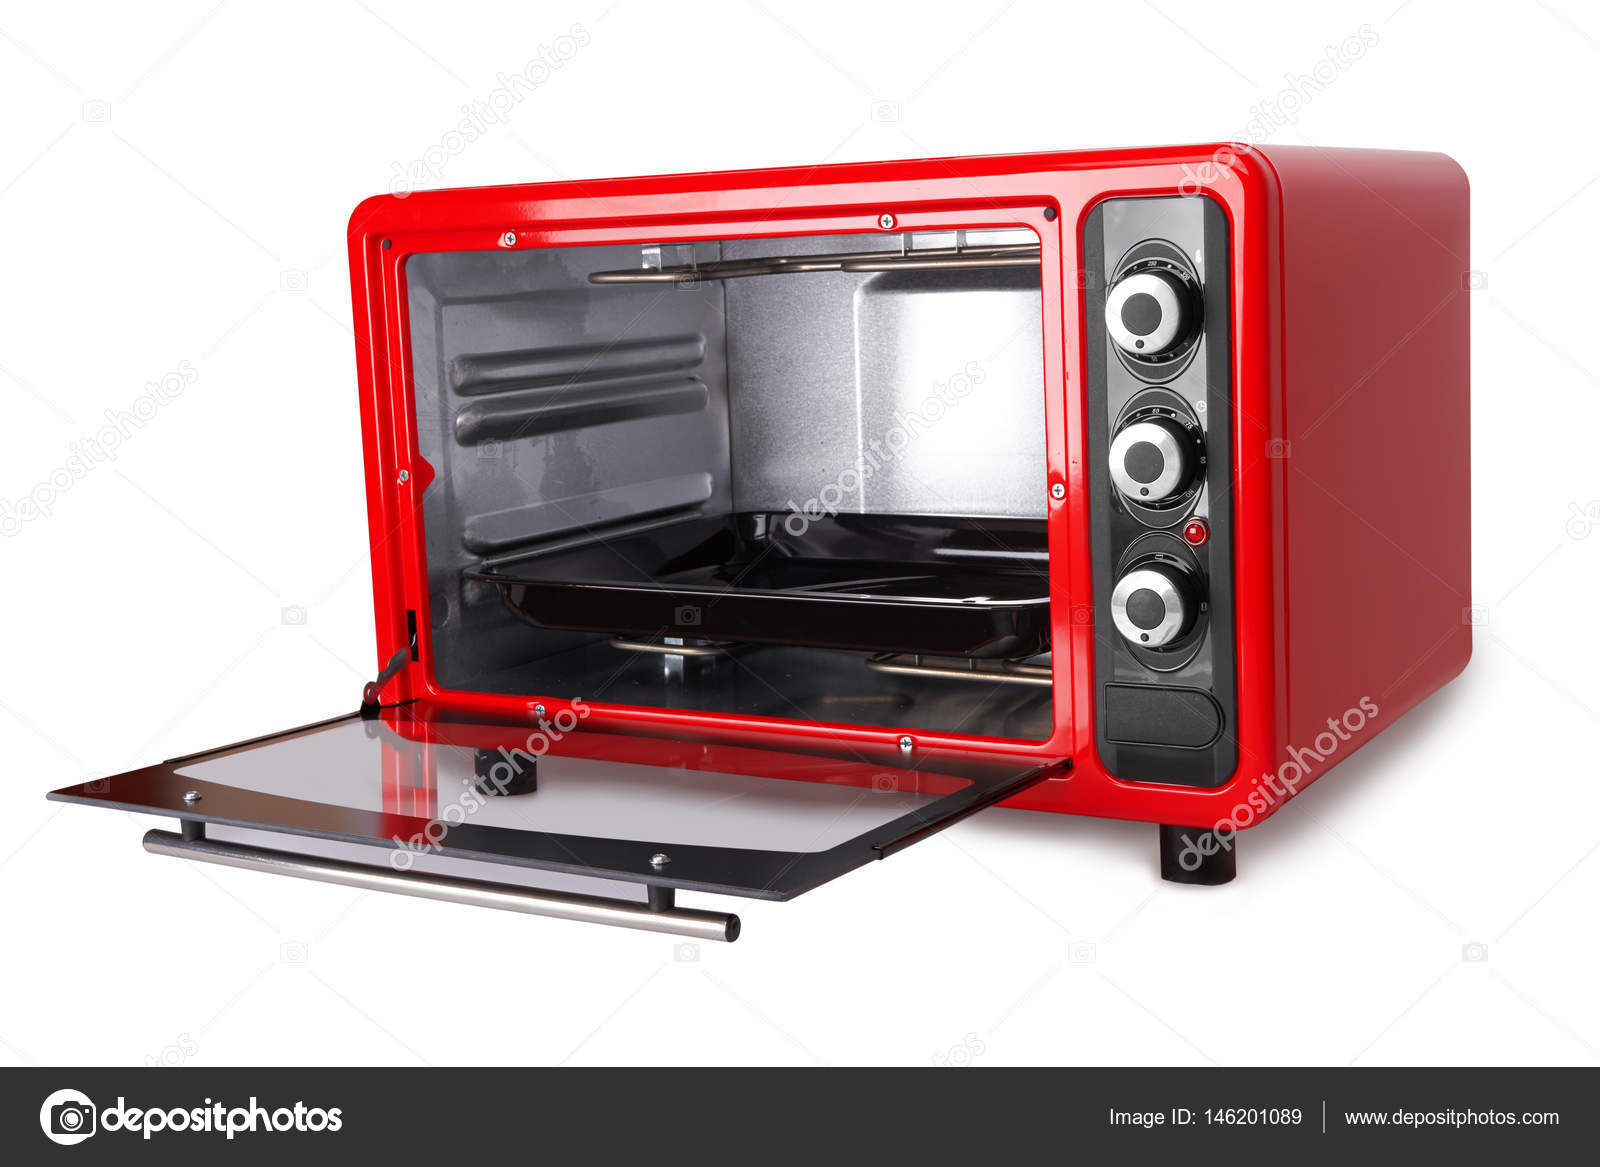 kitchen ovens pop up outlet 红色的厨房烤箱 图库照片 c pioneer111 146201089